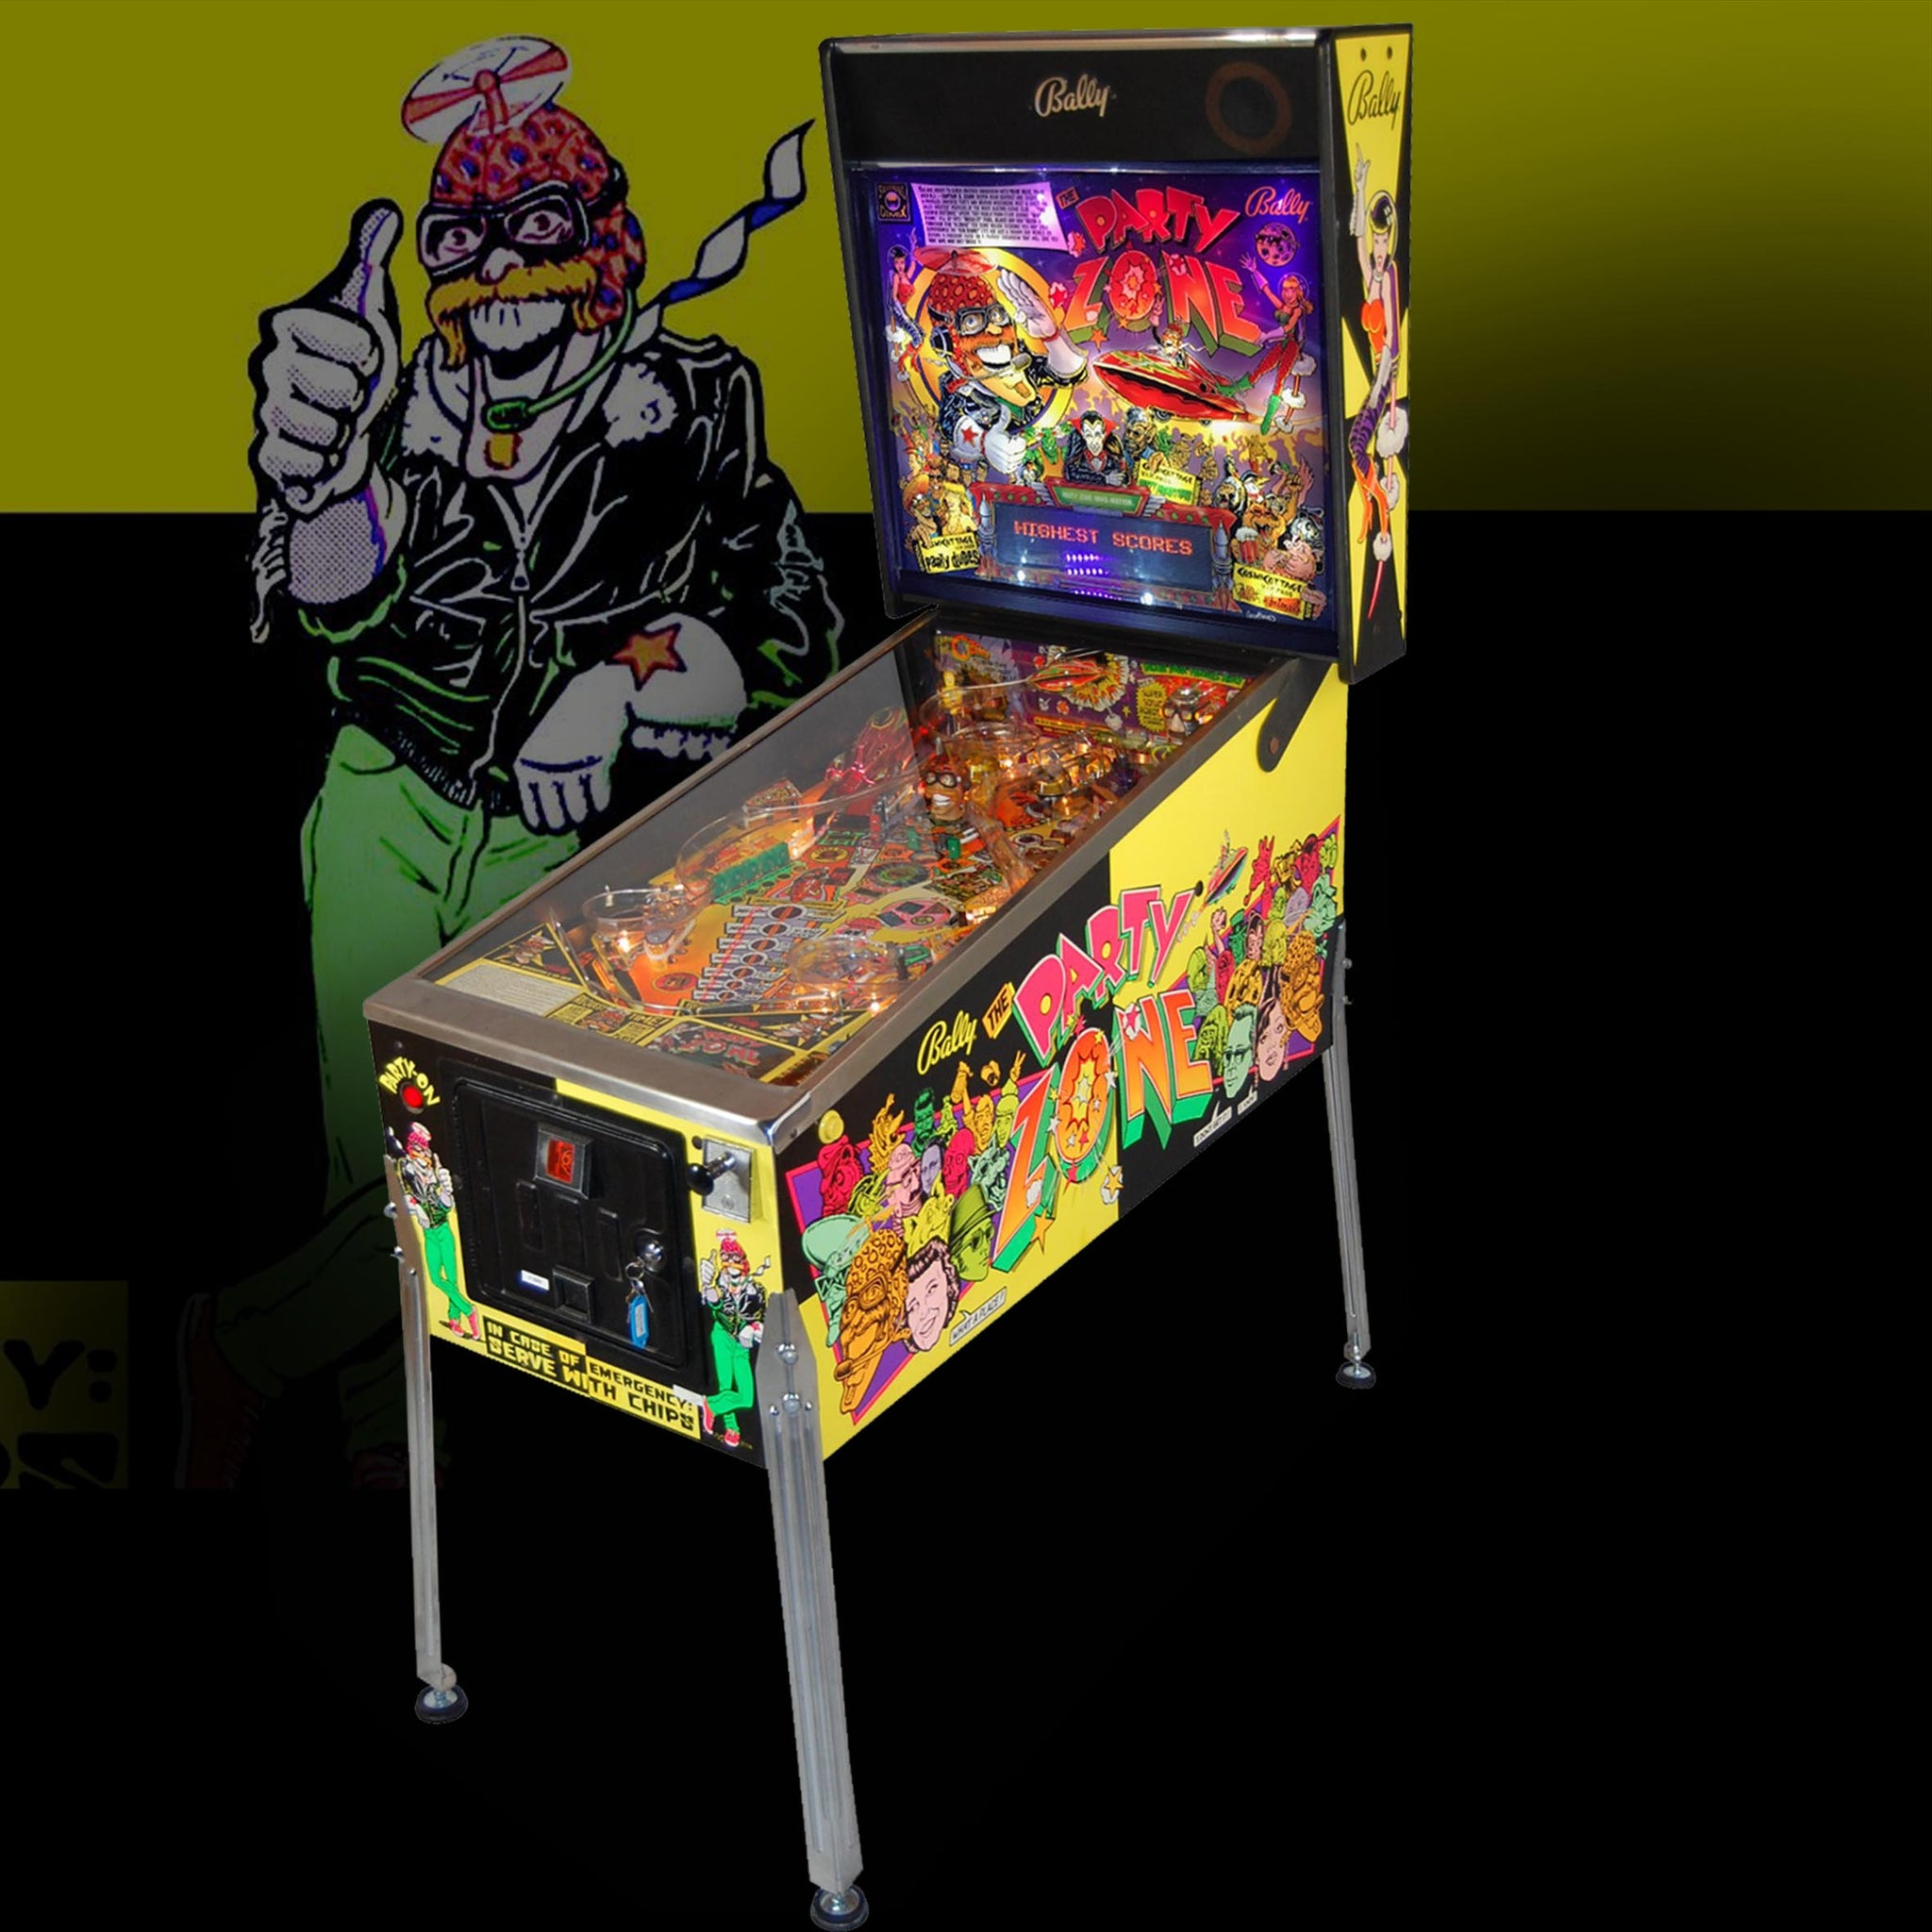 1991 Party Zone Pinball Machine by Bally